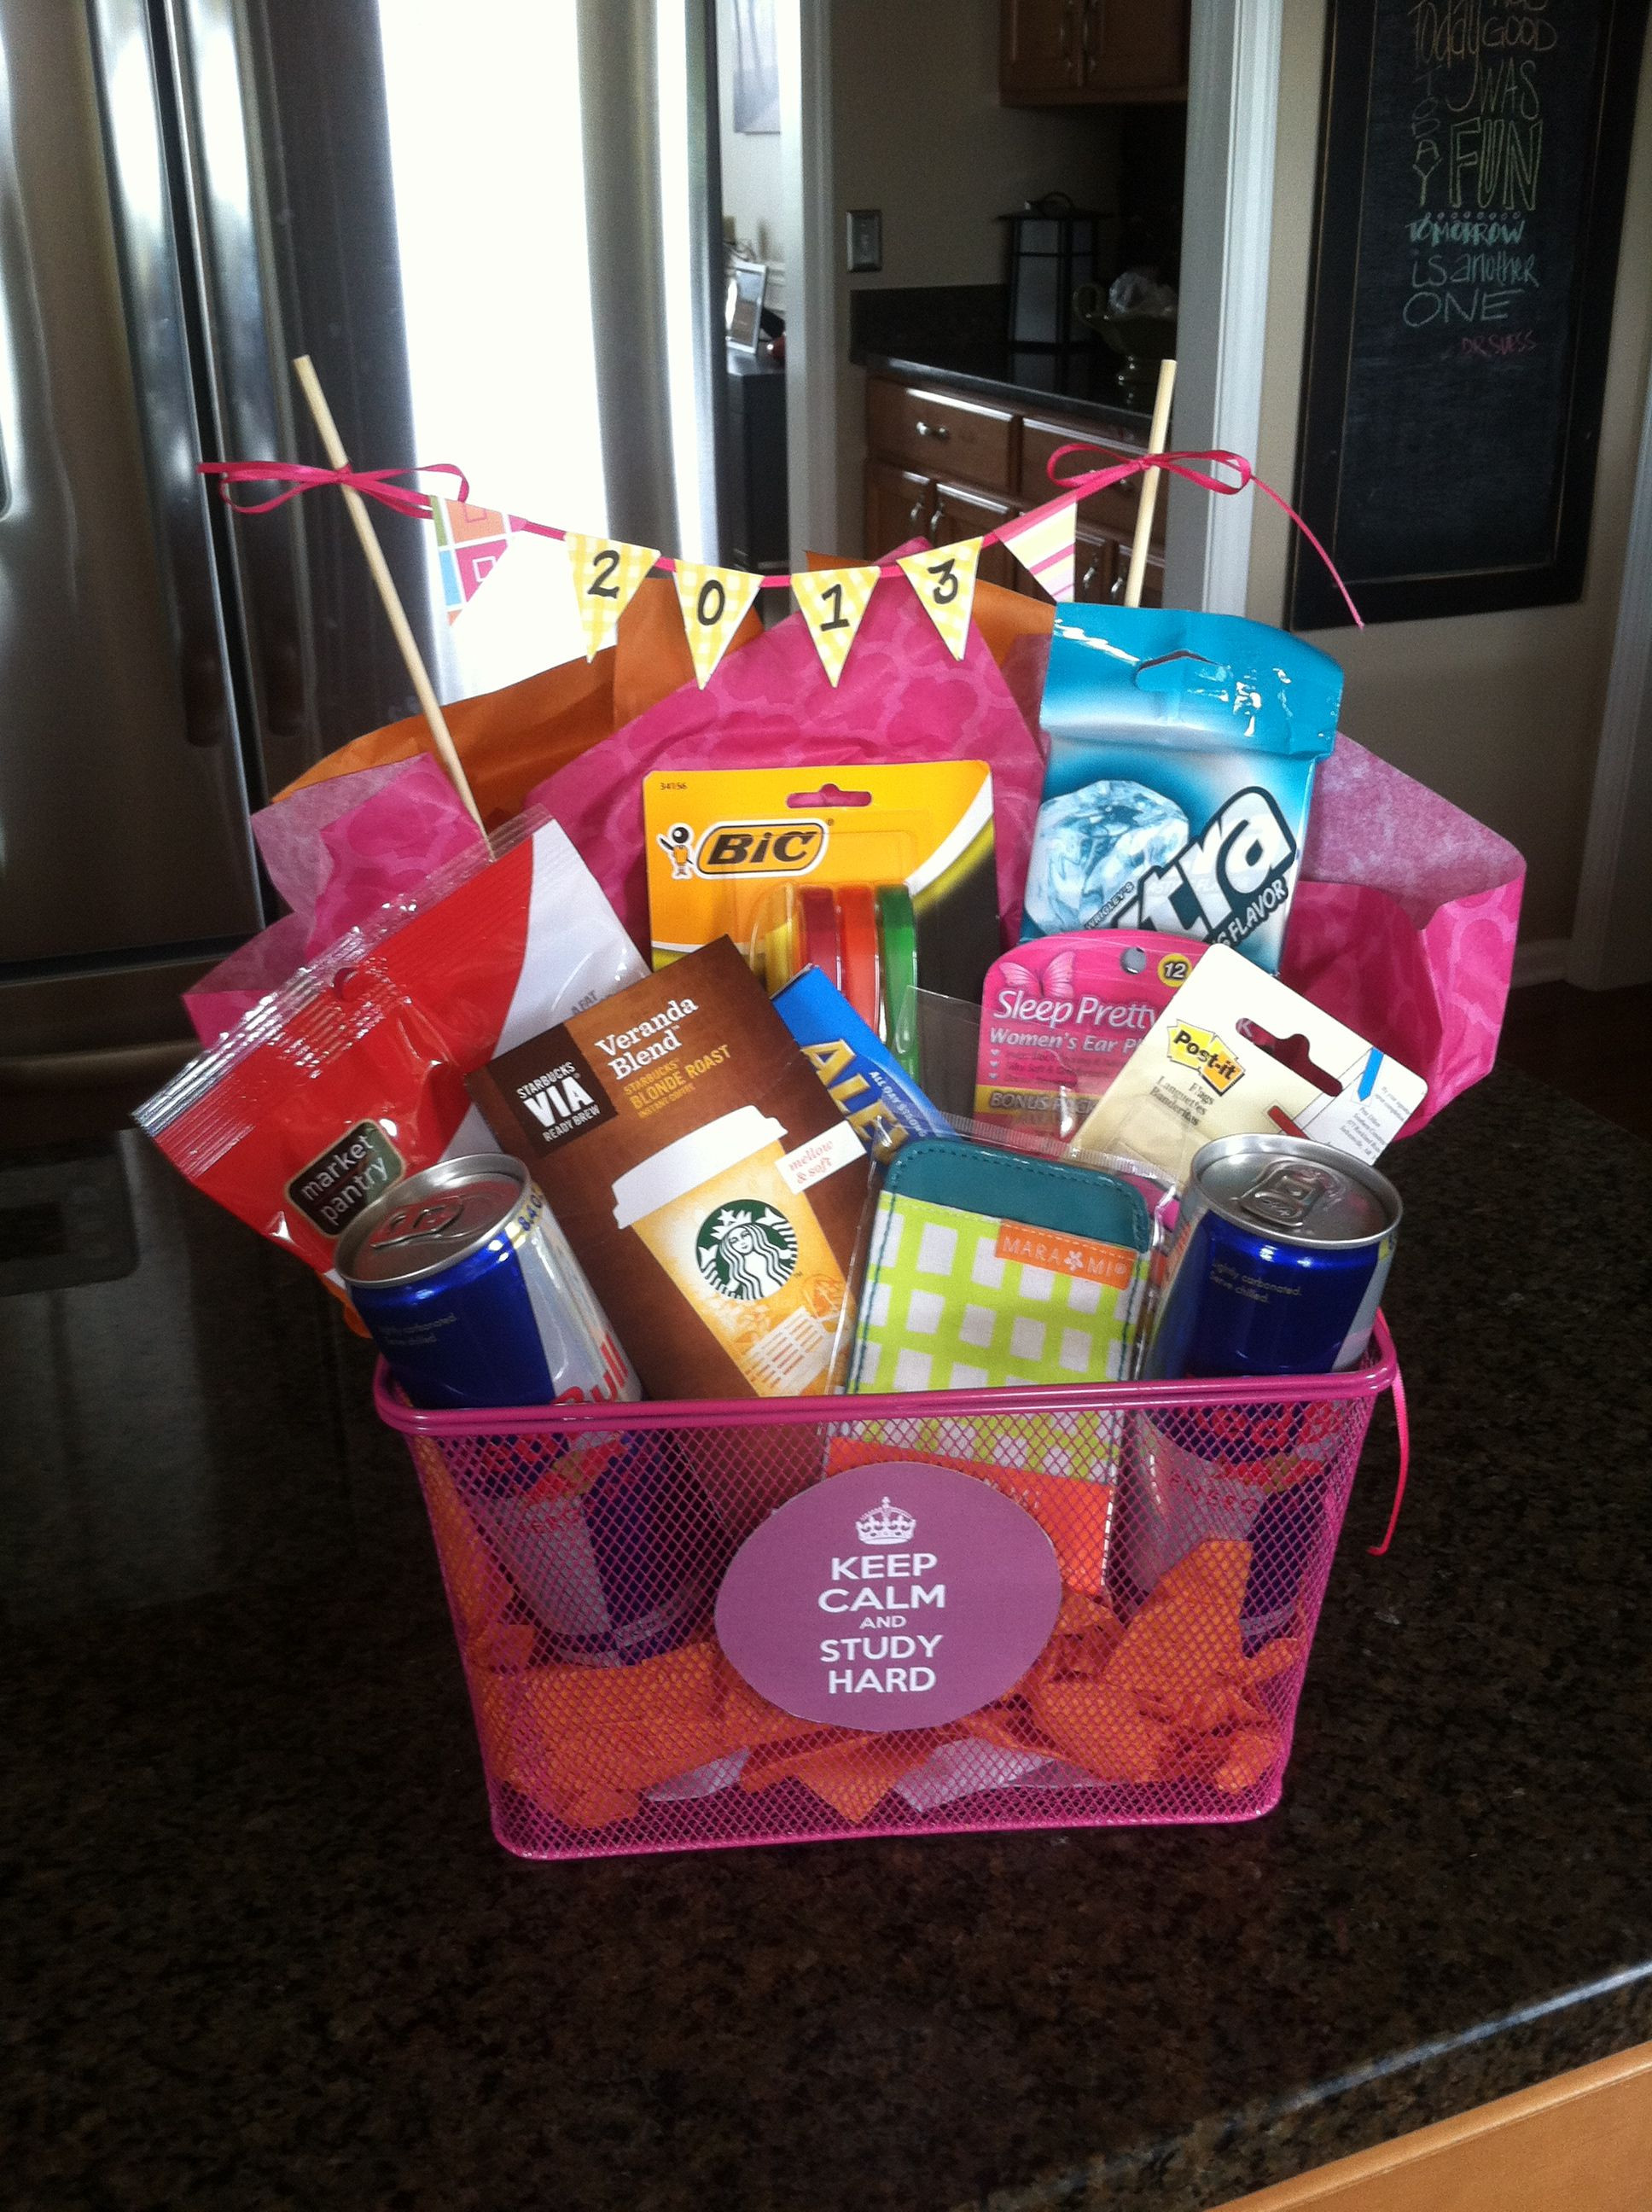 Best ideas about Diy Gift Basket Ideas For Her . Save or Pin f to college t basket study t basket graduation Now.